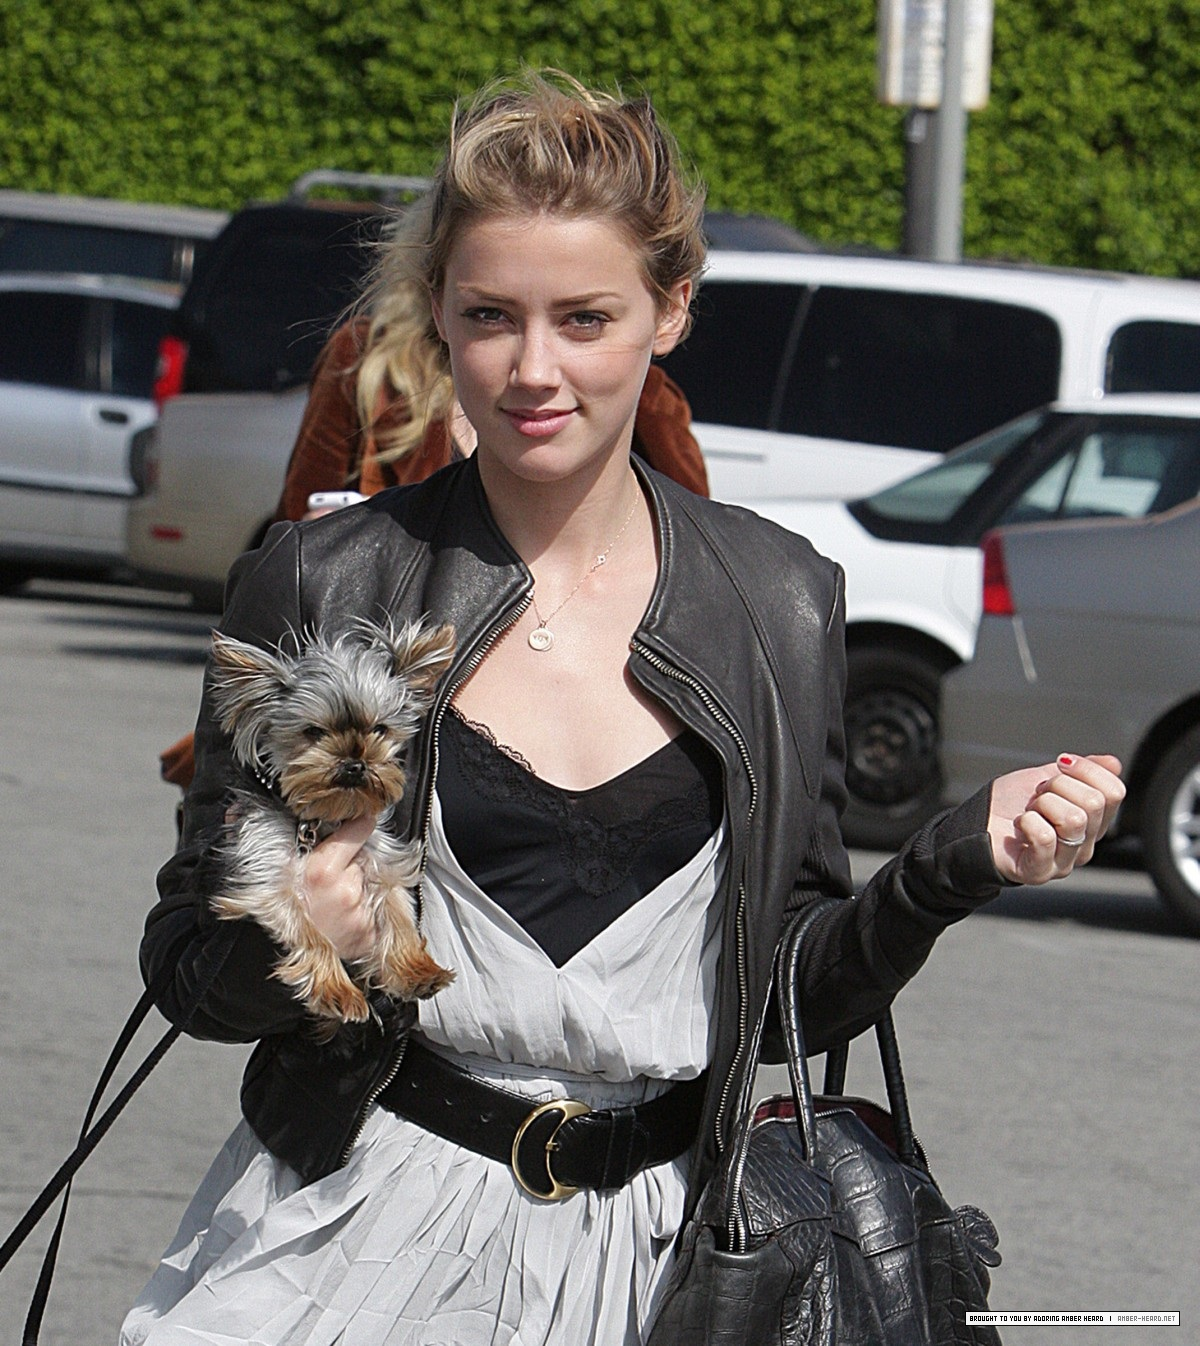 http://1.bp.blogspot.com/-SSyiiyUIUS0/T7XGsMalTbI/AAAAAAAAAME/MOYzuJqUGQA/s1600/amber_heard_out_and_about_may_2008_zeG6OKm.jpg